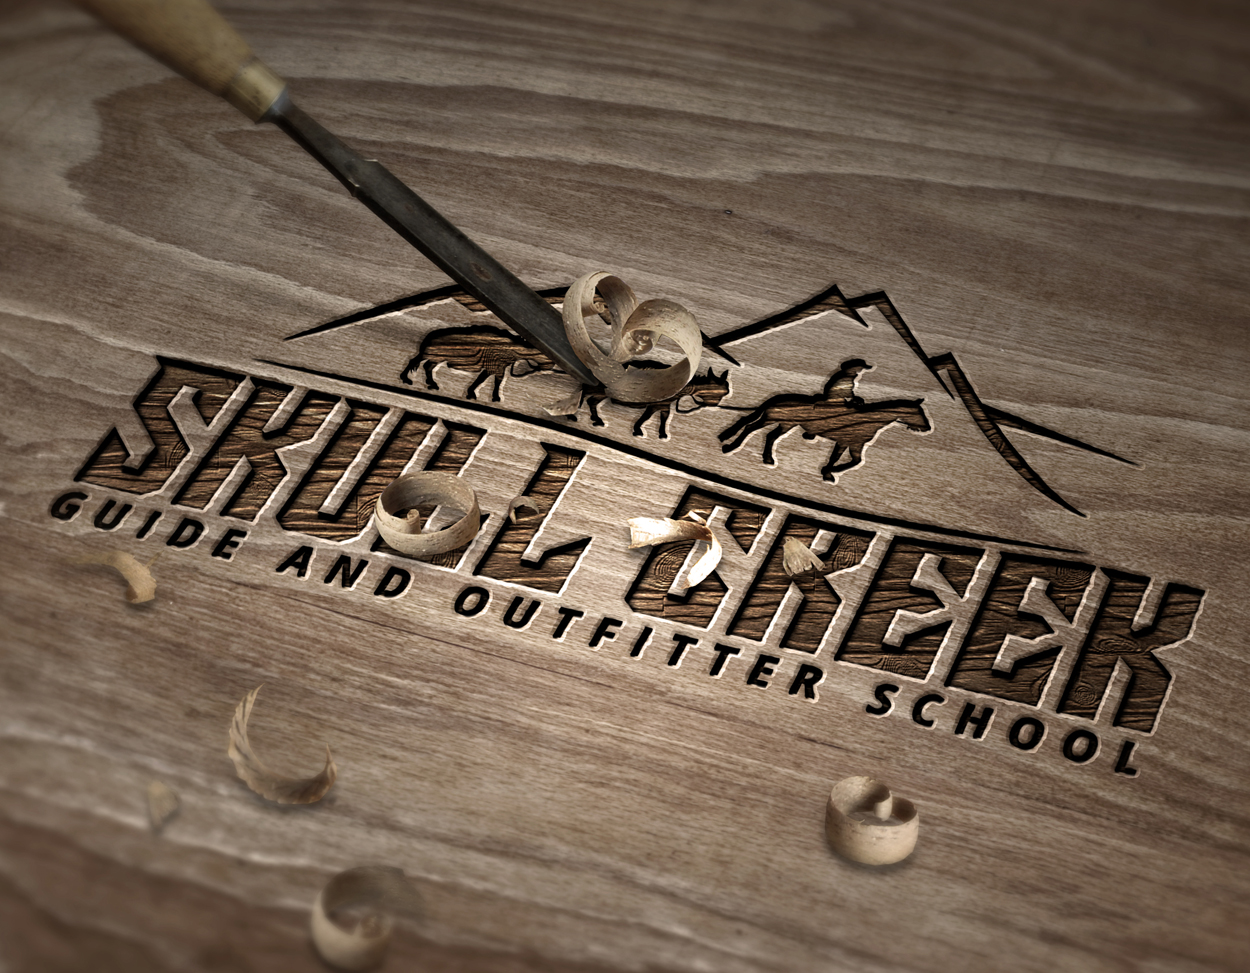 Skull Creek Guide and Outfitter Logo Hunting Design